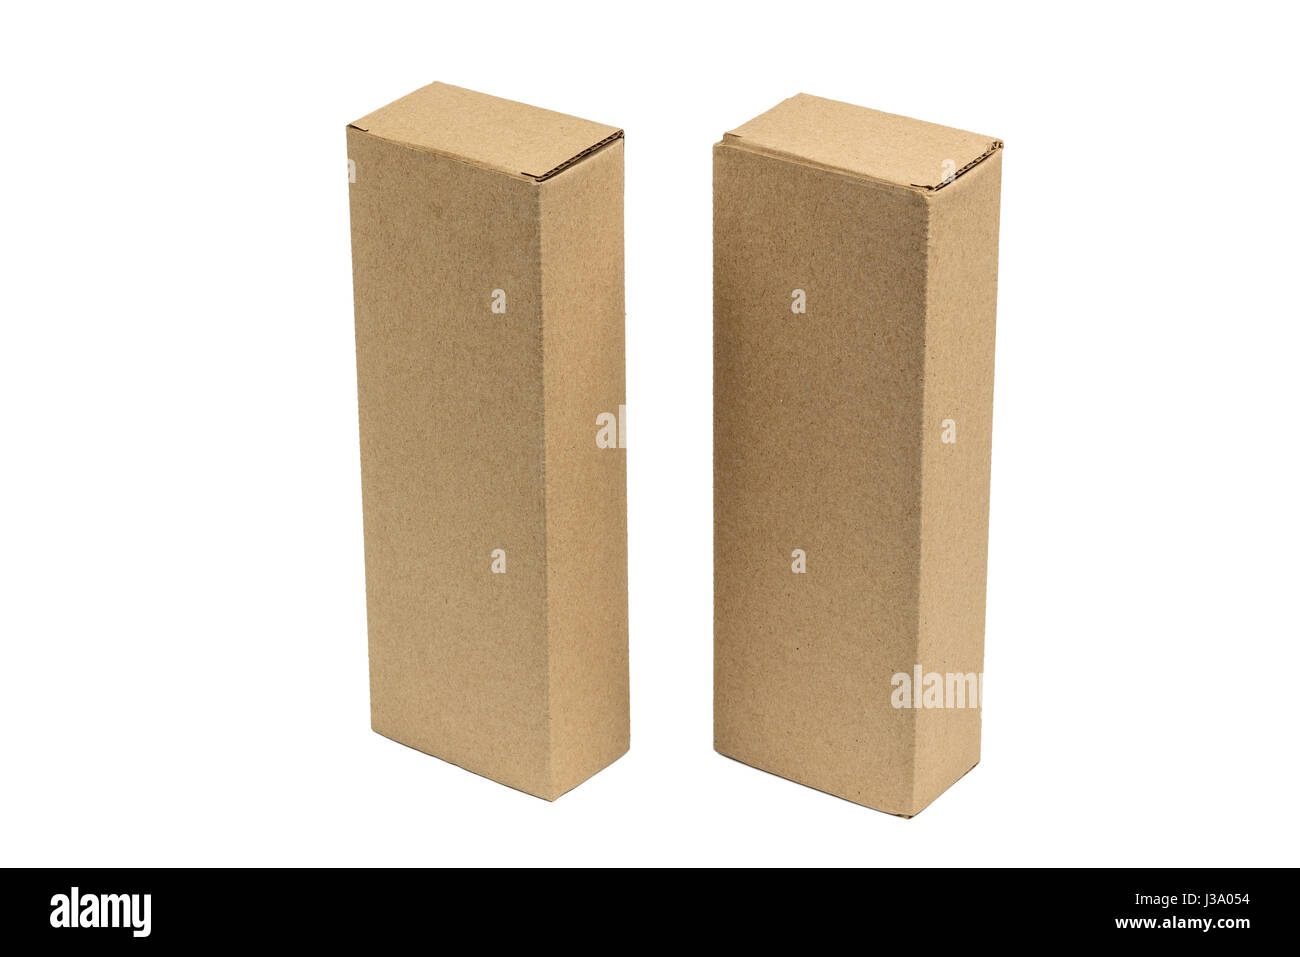 Two Long Rectangle Closed Brown Cardboard Box Packaging Blank Template In Isolated On White Background